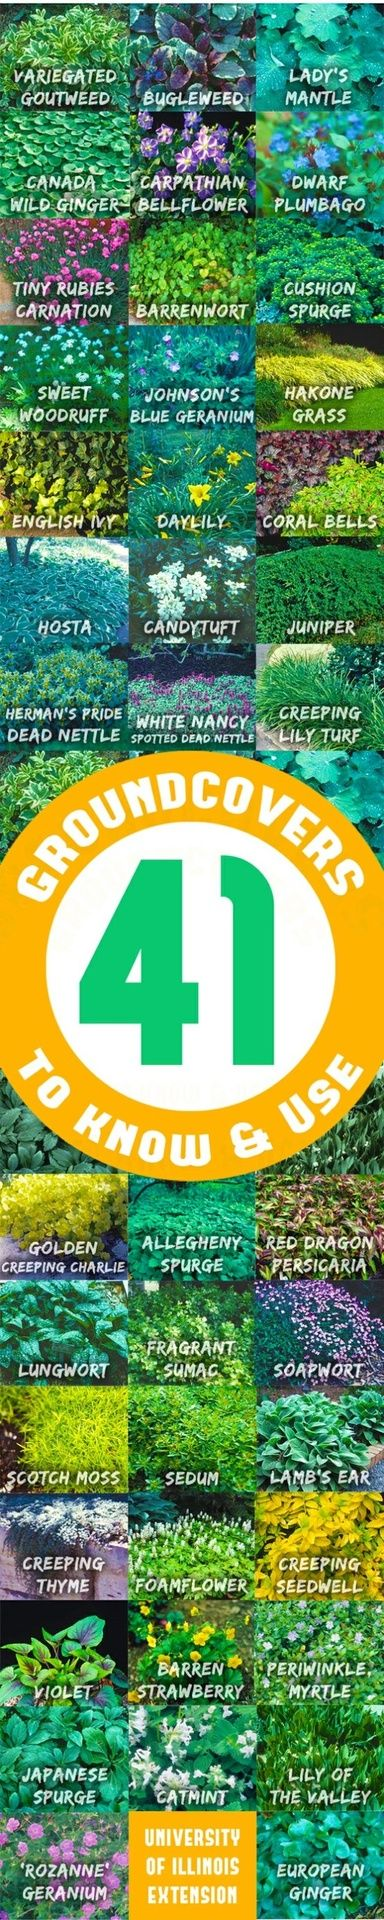 41 Groundcovers to fill in spaces around the garden and prevent weeds from spreading. Some even help prevent erosion...